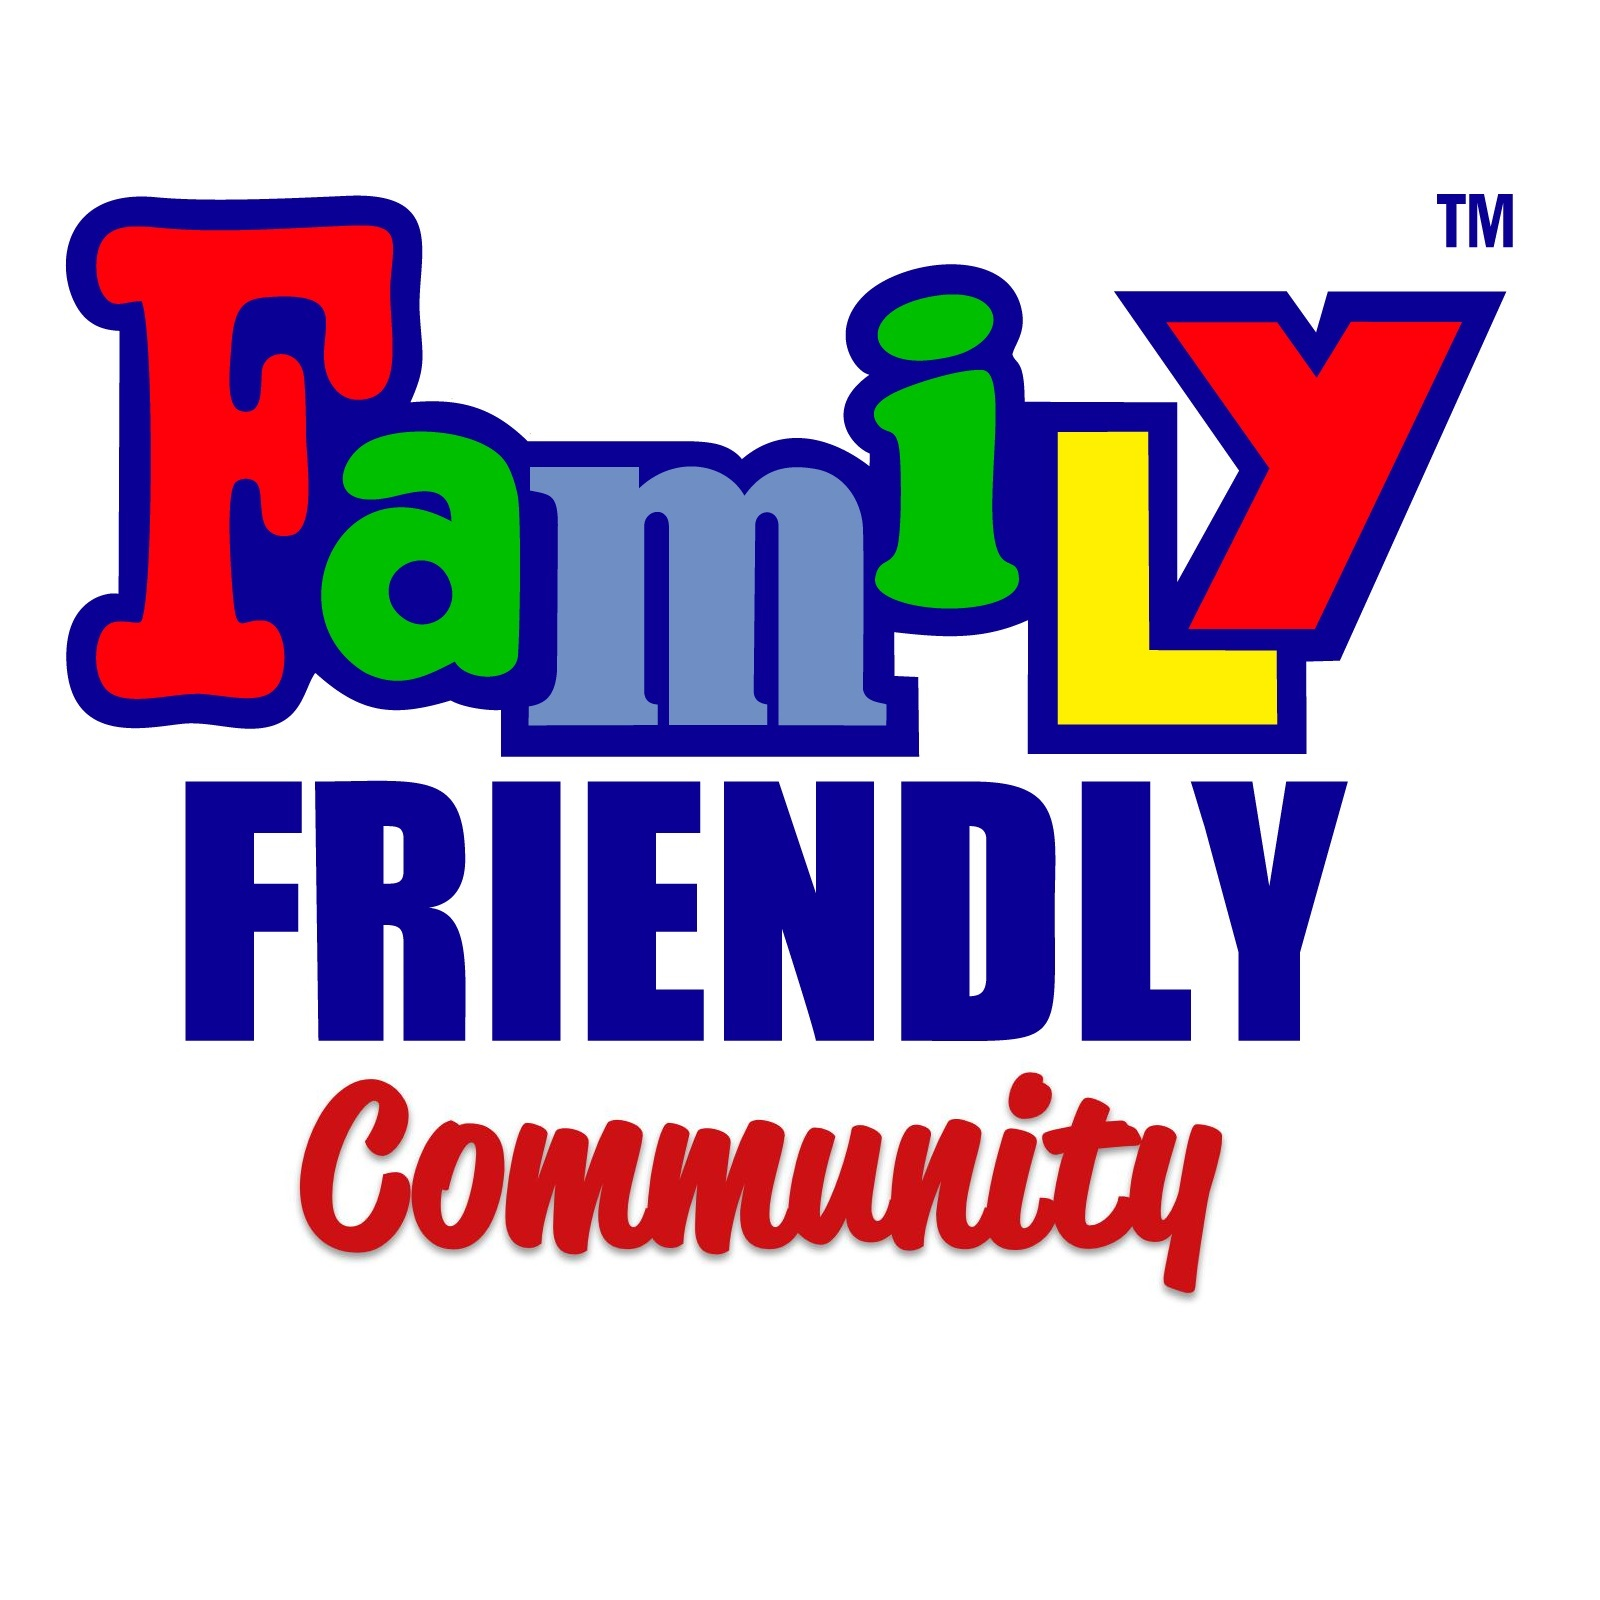 Chaffey Theater - Community Organisations - Family Friendly